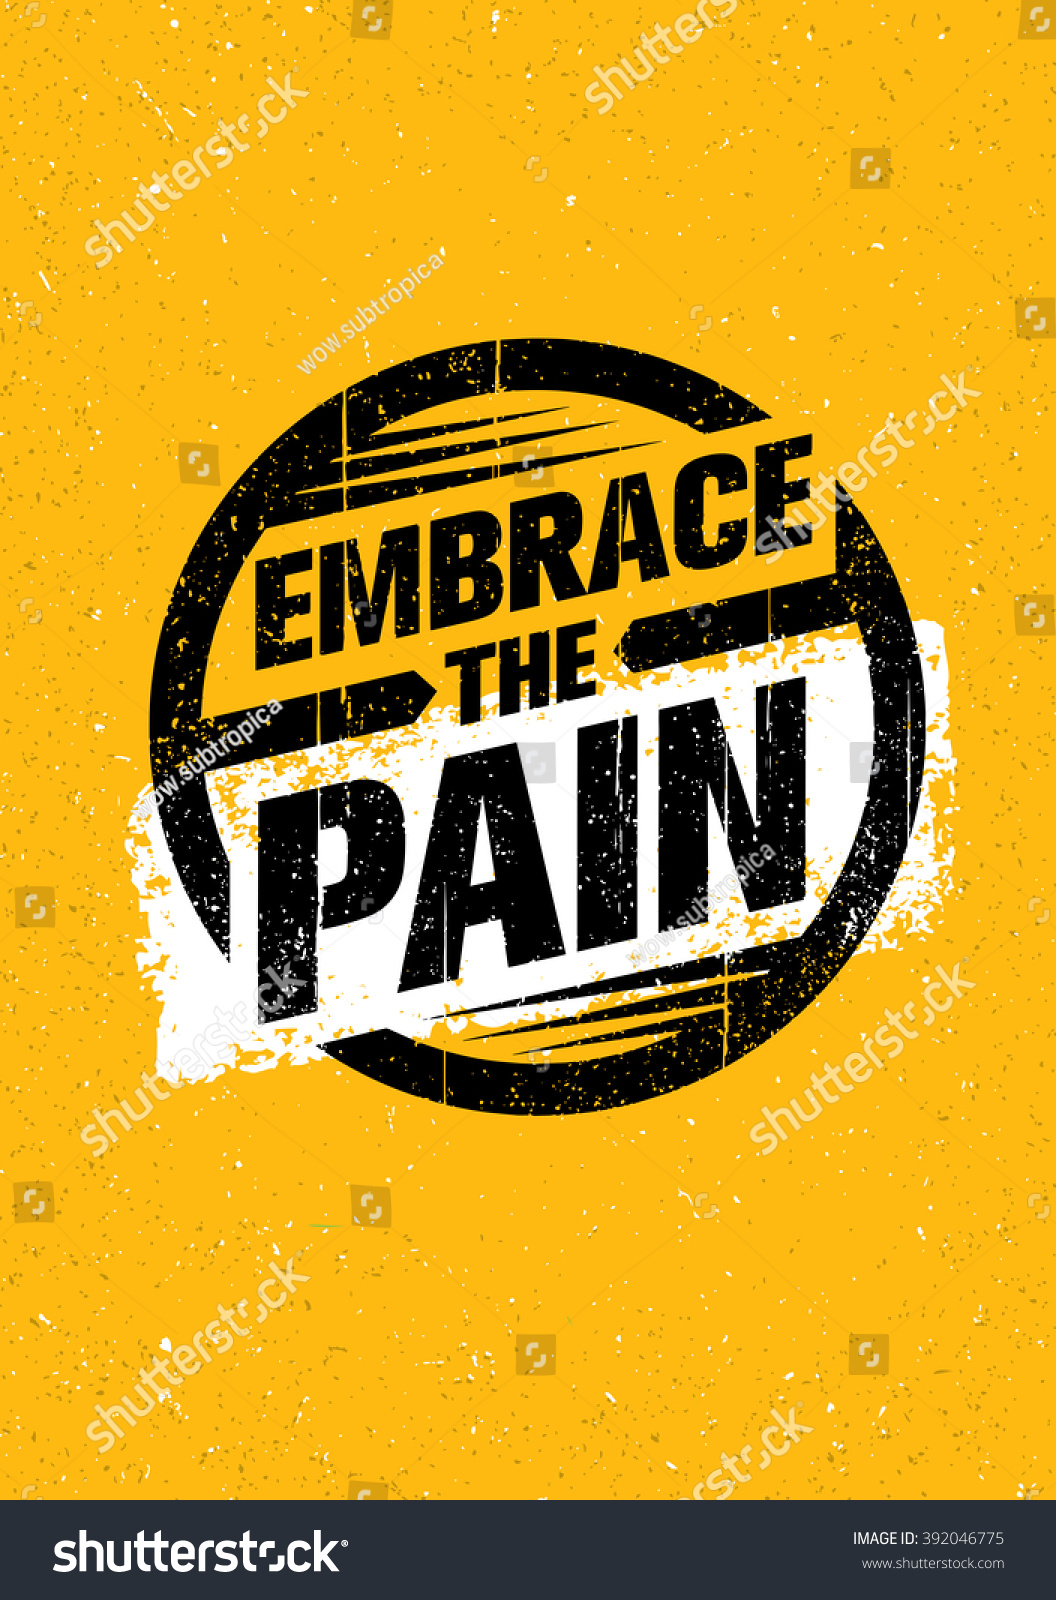 Embrace Pain Sign Sport Fitness Creative Stock Vector 392046775 ...